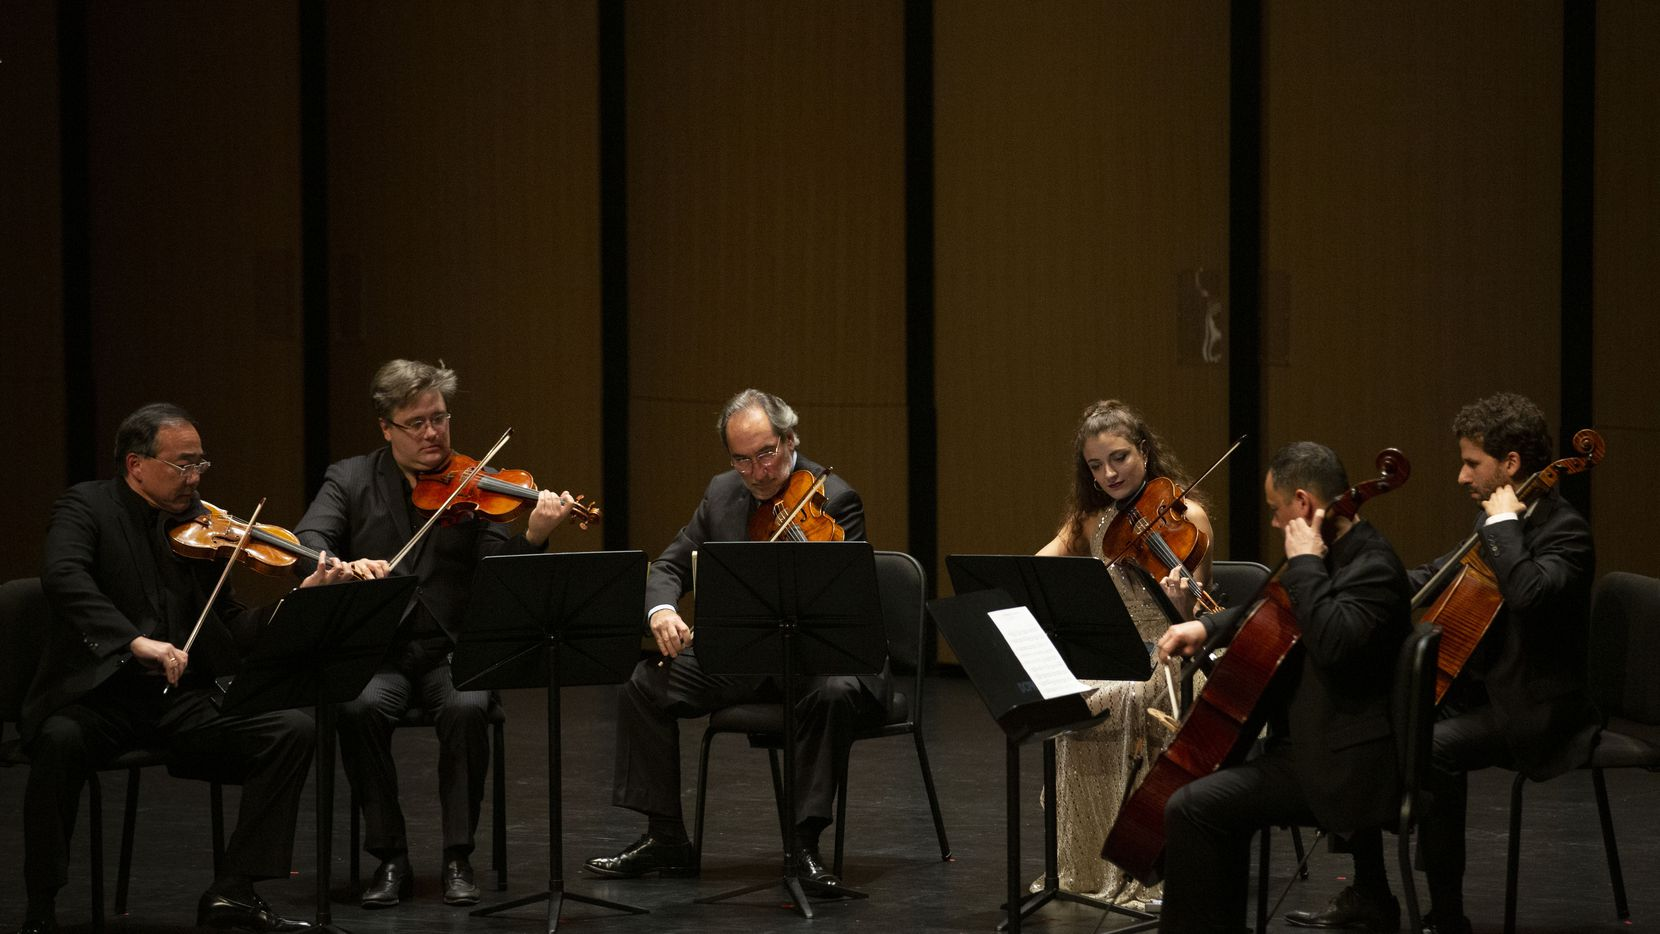 (From left) Violinists Cho-Liang Lin and Aaron Boyd, violists Toby Hoffman and Milena Pajaro-van de Stadt and cellists Bion Tsang and Nick Canellakis perform in a Chamber Music International concert at Moody Performance Hall in Dallas on Friday, Dec. 6, 2019.